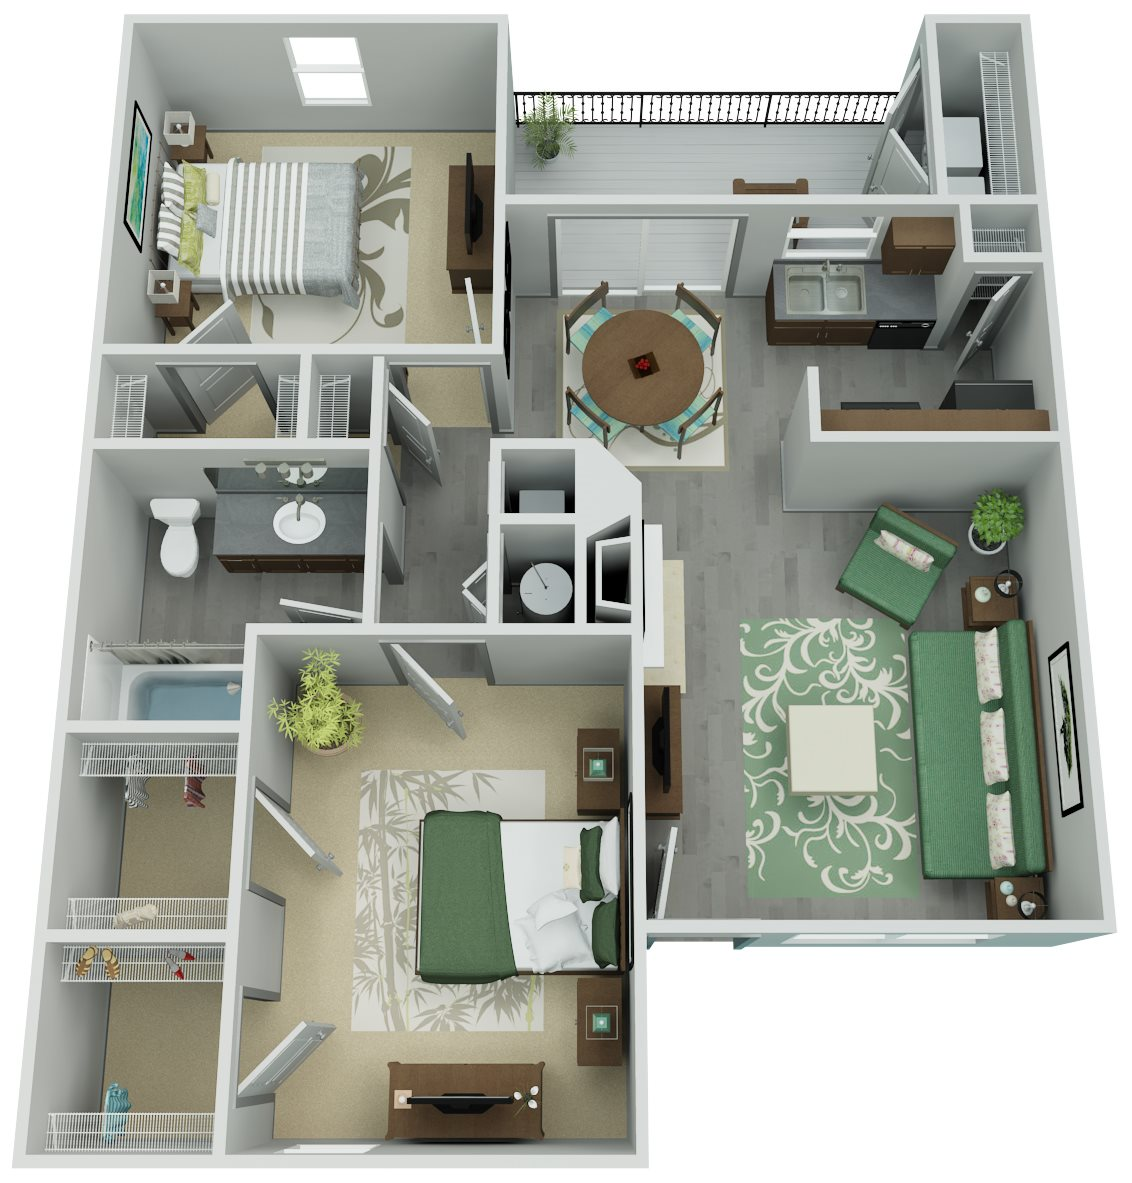 Trailpoint at The Woodlands Apartment Homes - 2 Bedroom 1 Bath Apartment